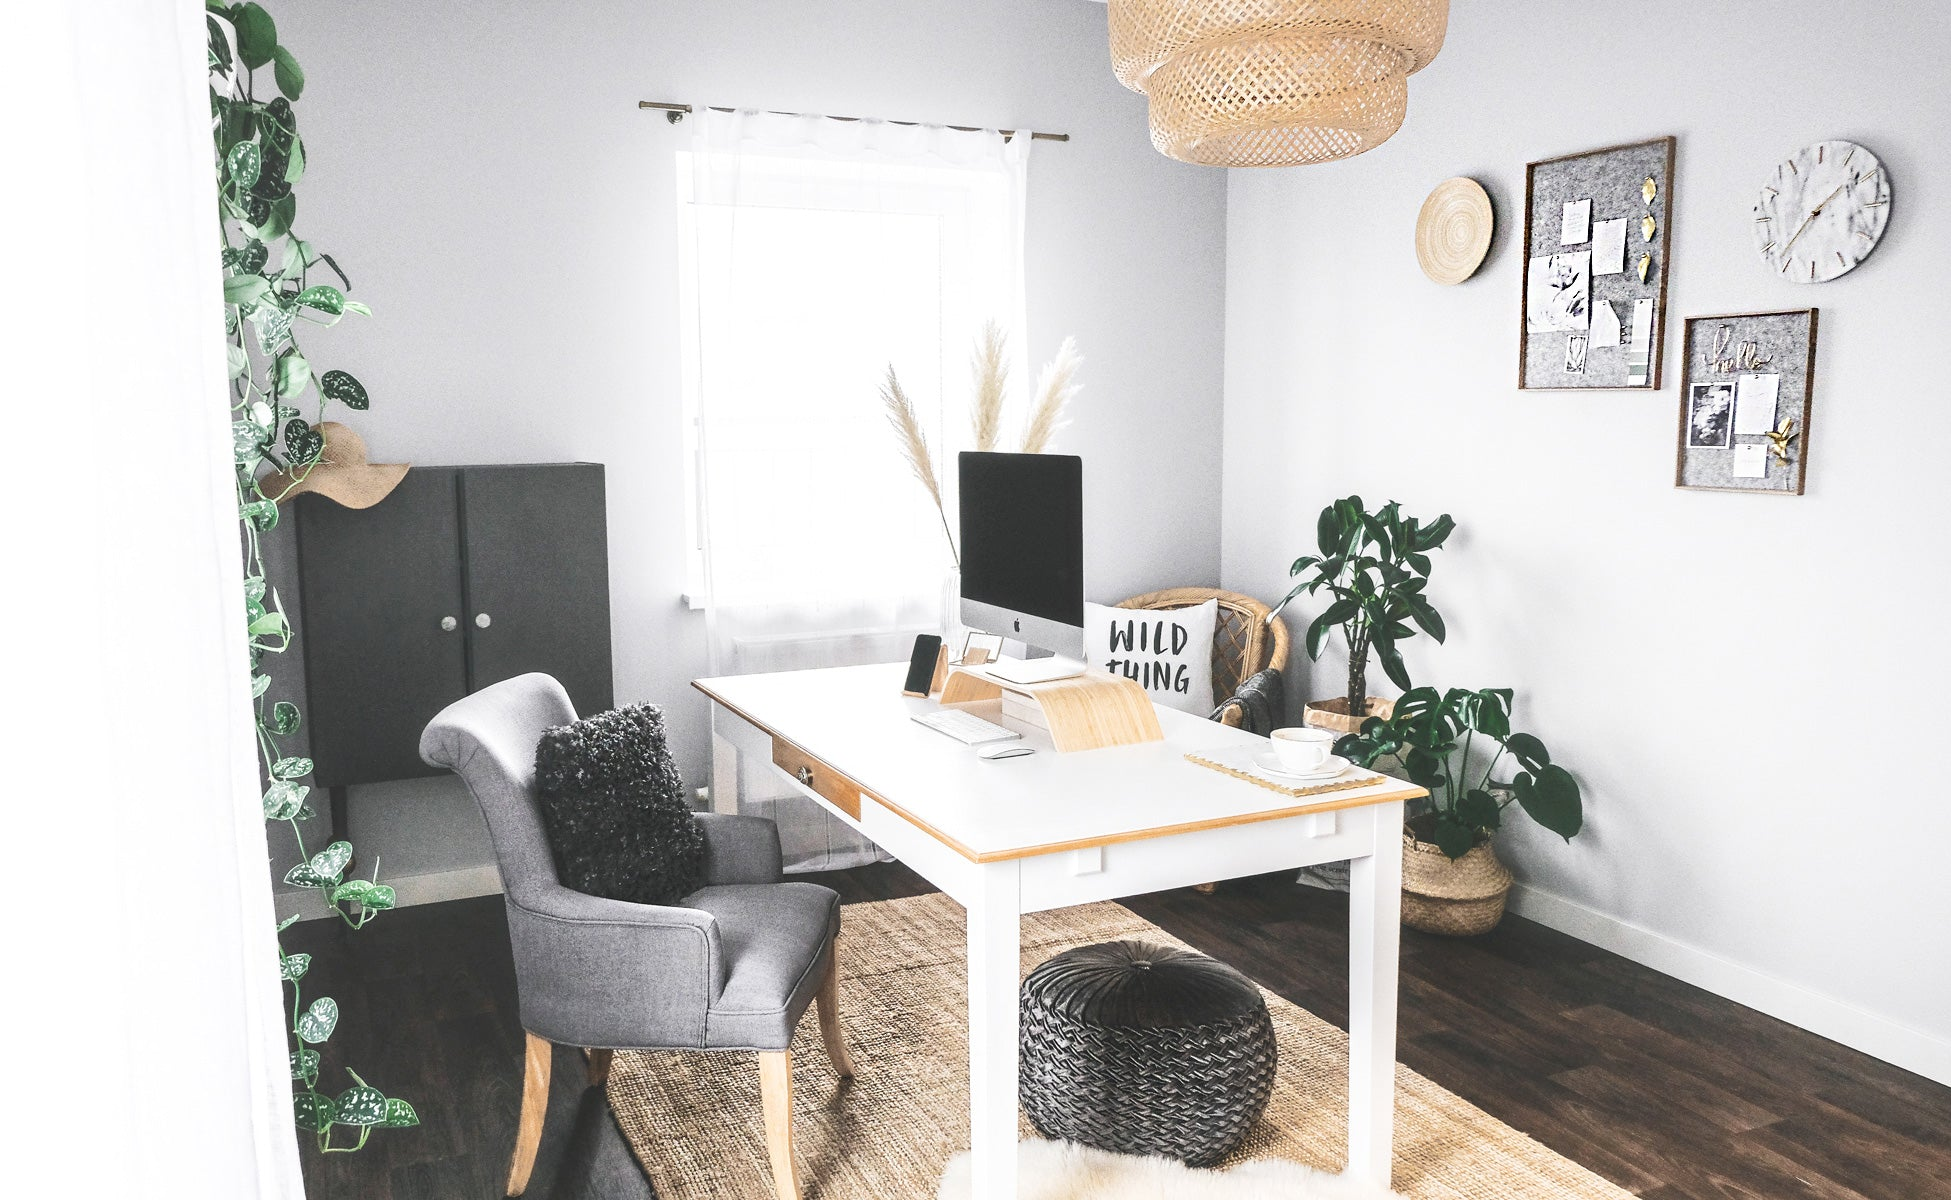 Minimalist bohemian office interior with grey color palette and gold accents